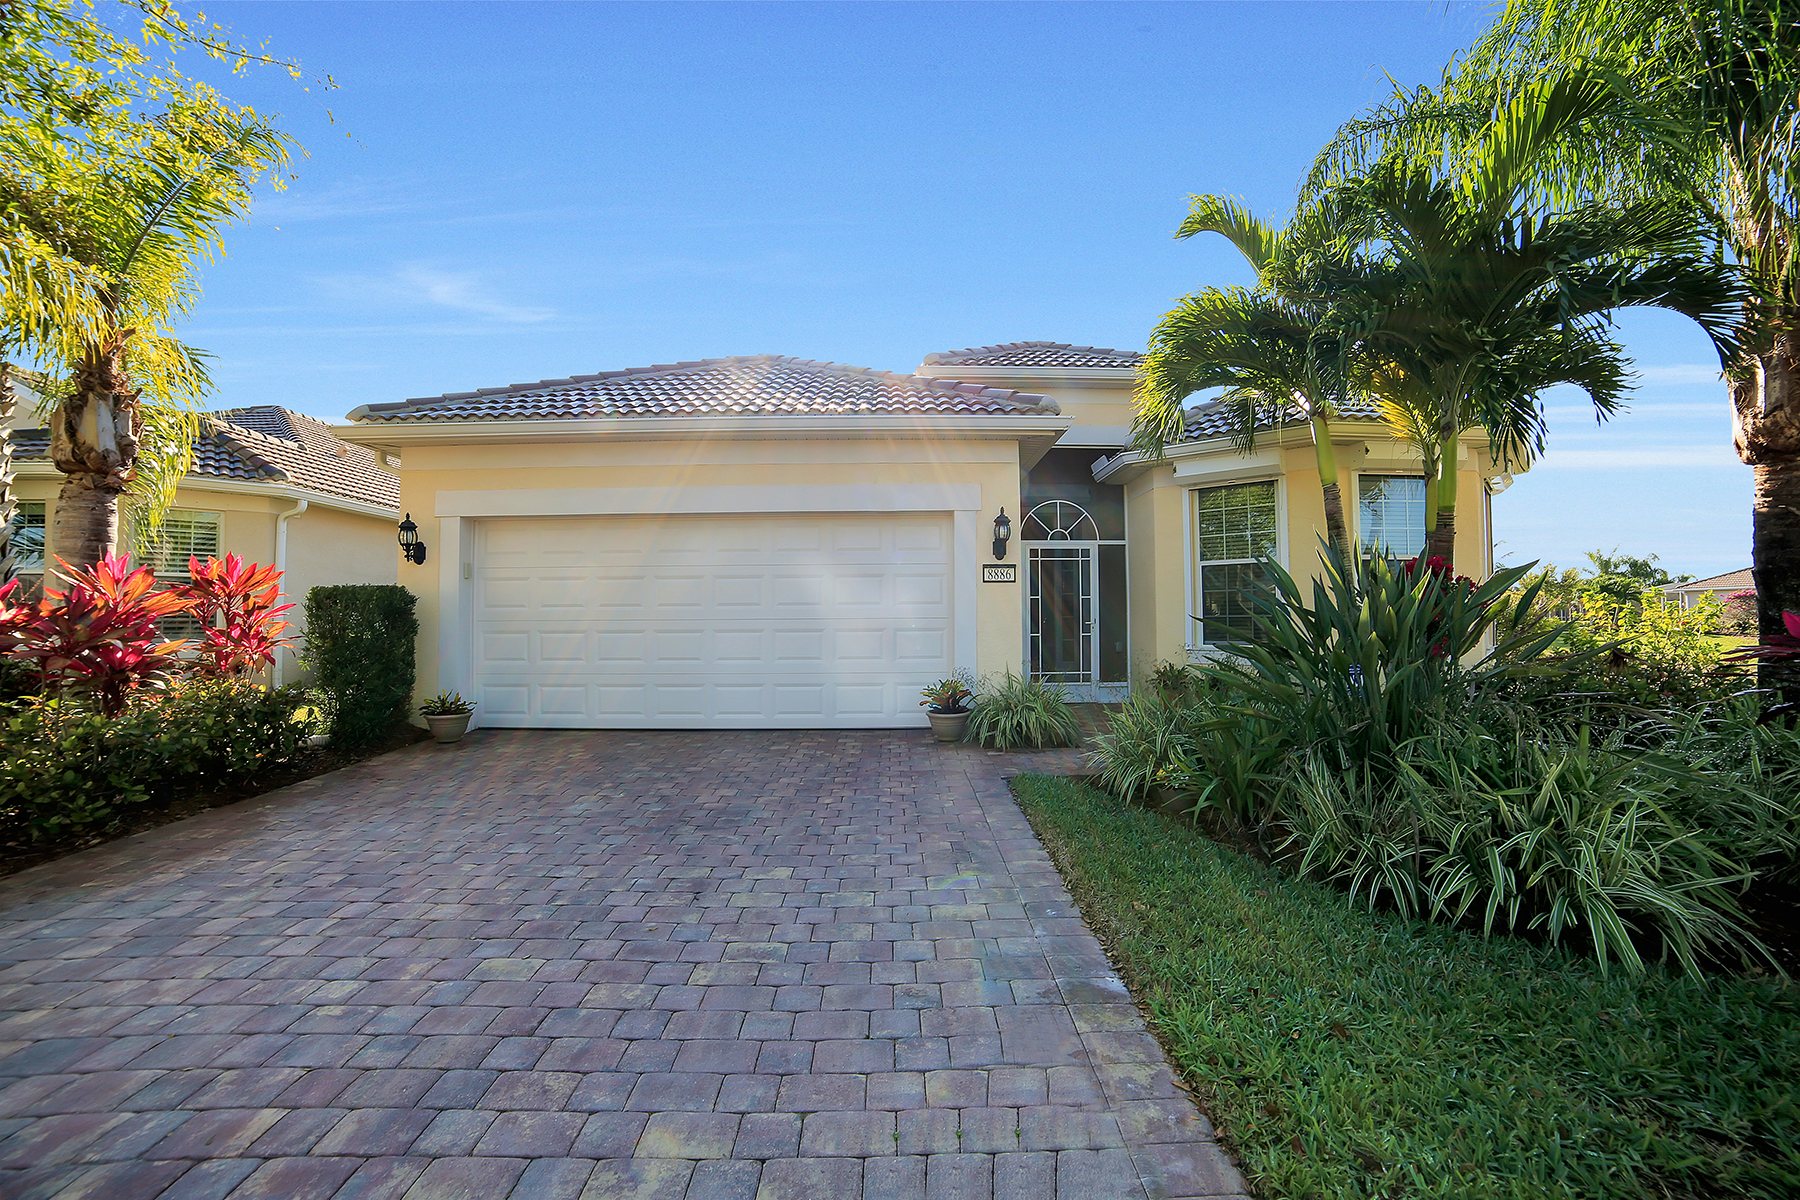 Single Family Home for Sale at VERONA WALK 8886 Ravello Ct, Naples, Florida, 34114 United States